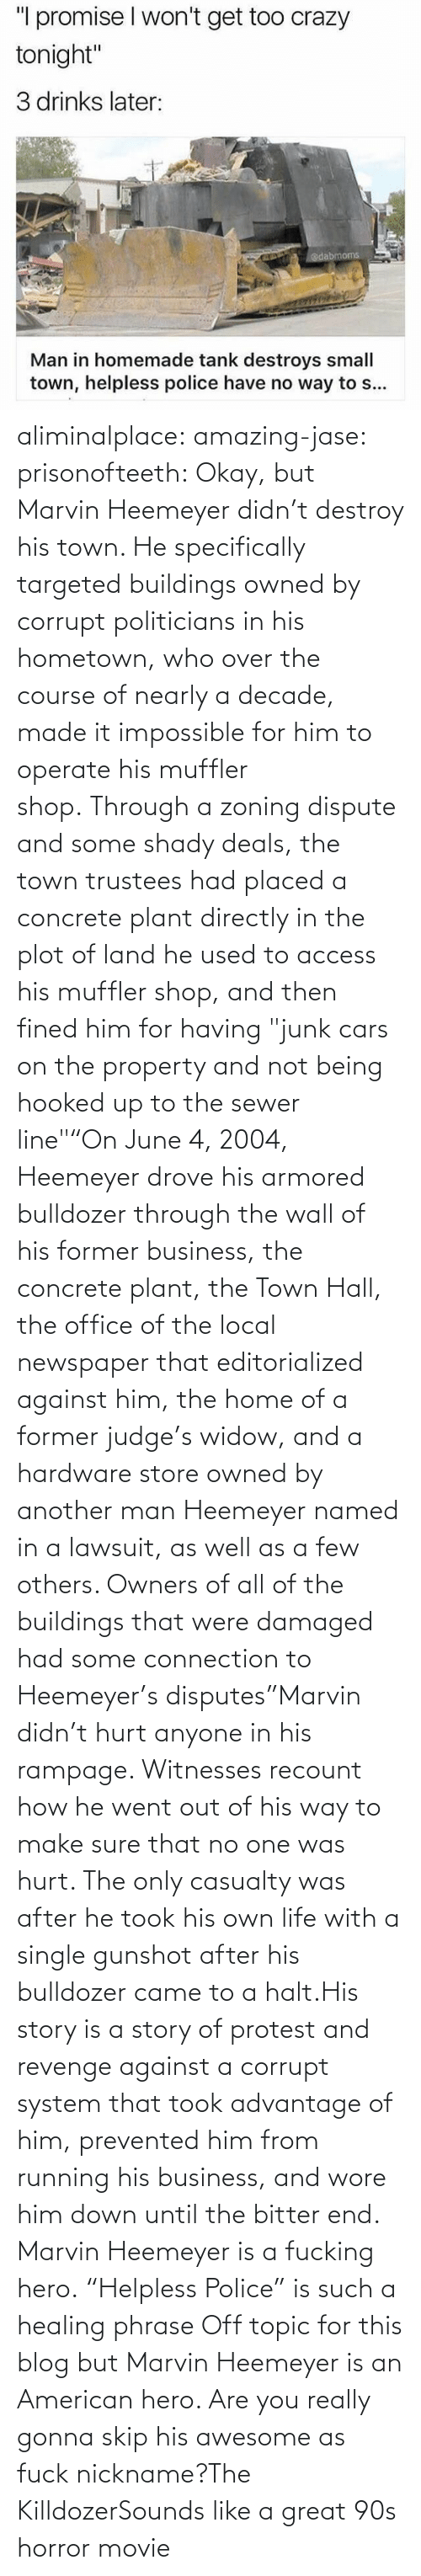 "A Fucking: aliminalplace: amazing-jase:  prisonofteeth: Okay, but Marvin Heemeyer didn't destroy his town. He specifically targeted buildings owned by corrupt politicians in his hometown, who over the course of nearly a decade, made it impossible for him to operate his muffler shop. Through a zoning dispute and some shady deals, the town trustees had placed a concrete plant directly in the plot of land he used to access his muffler shop, and then fined him for having ""junk cars on the property and not being hooked up to the sewer line""""On June 4, 2004, Heemeyer drove his armored bulldozer through the wall of his former business, the concrete plant, the Town Hall, the office of the local newspaper that editorialized against him, the home of a former judge's widow, and a hardware store owned by another man Heemeyer named in a lawsuit, as well as a few others. Owners of all of the buildings that were damaged had some connection to Heemeyer's disputes""Marvin didn't hurt anyone in his rampage. Witnesses recount how he went out of his way to make sure that no one was hurt. The only casualty was after he took his own life with a single gunshot after his bulldozer came to a halt.His story is a story of protest and revenge against a corrupt system that took advantage of him, prevented him from running his business, and wore him down until the bitter end. Marvin Heemeyer is a fucking hero. ""Helpless Police"" is such a healing phrase    Off topic for this blog but Marvin Heemeyer is an American hero.     Are you really gonna skip his awesome as fuck nickname?The KilldozerSounds like a great 90s horror movie"